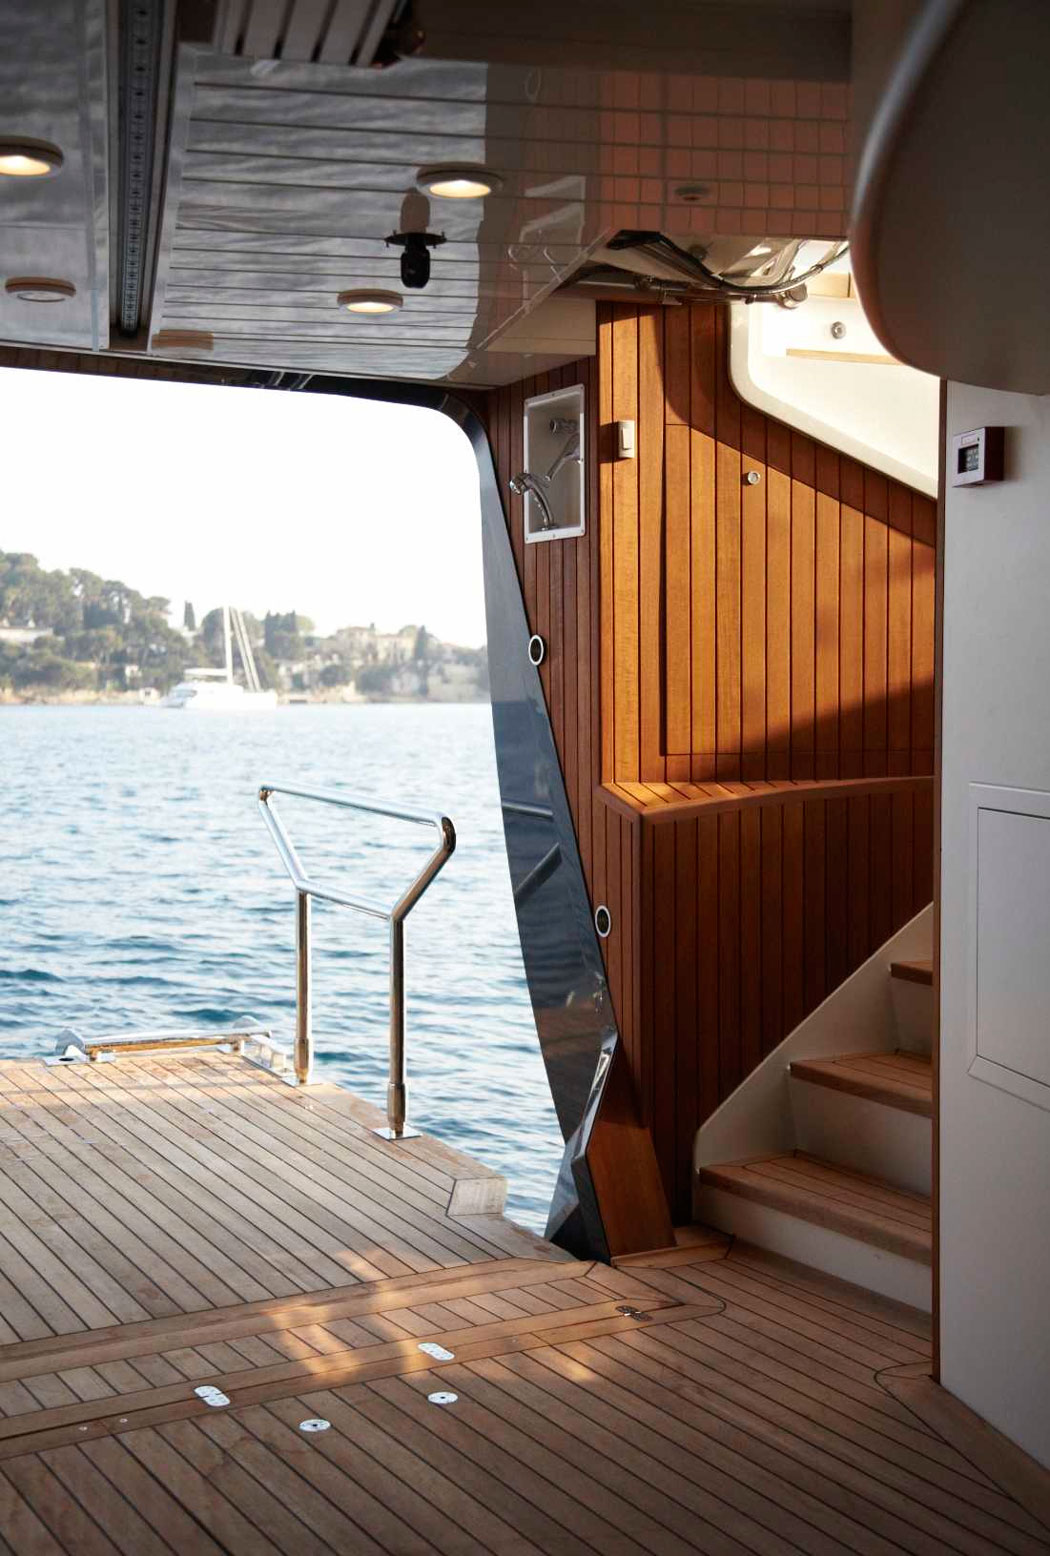 HERO-Million-dollar-yacht-with-open-water-level-deck-ITCHBAN.com